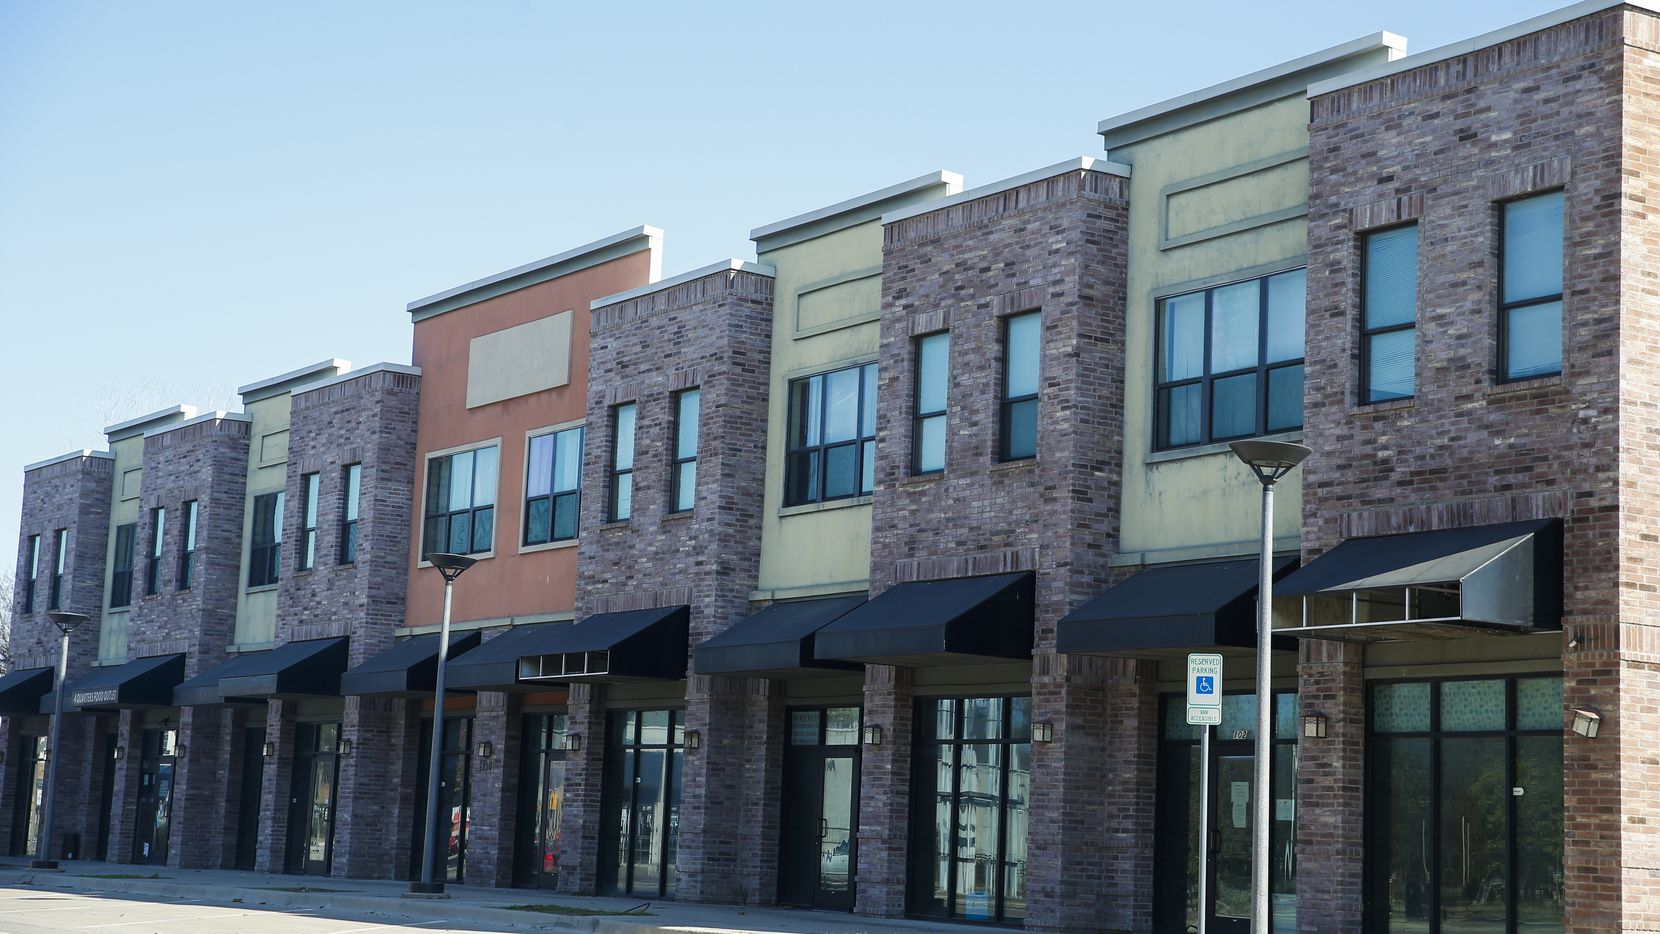 Seven people live in the low-rent upstairs apartments at 5210 Bexar Street. But the downstairs storefronts, which taxpayers helped fund, are barren.